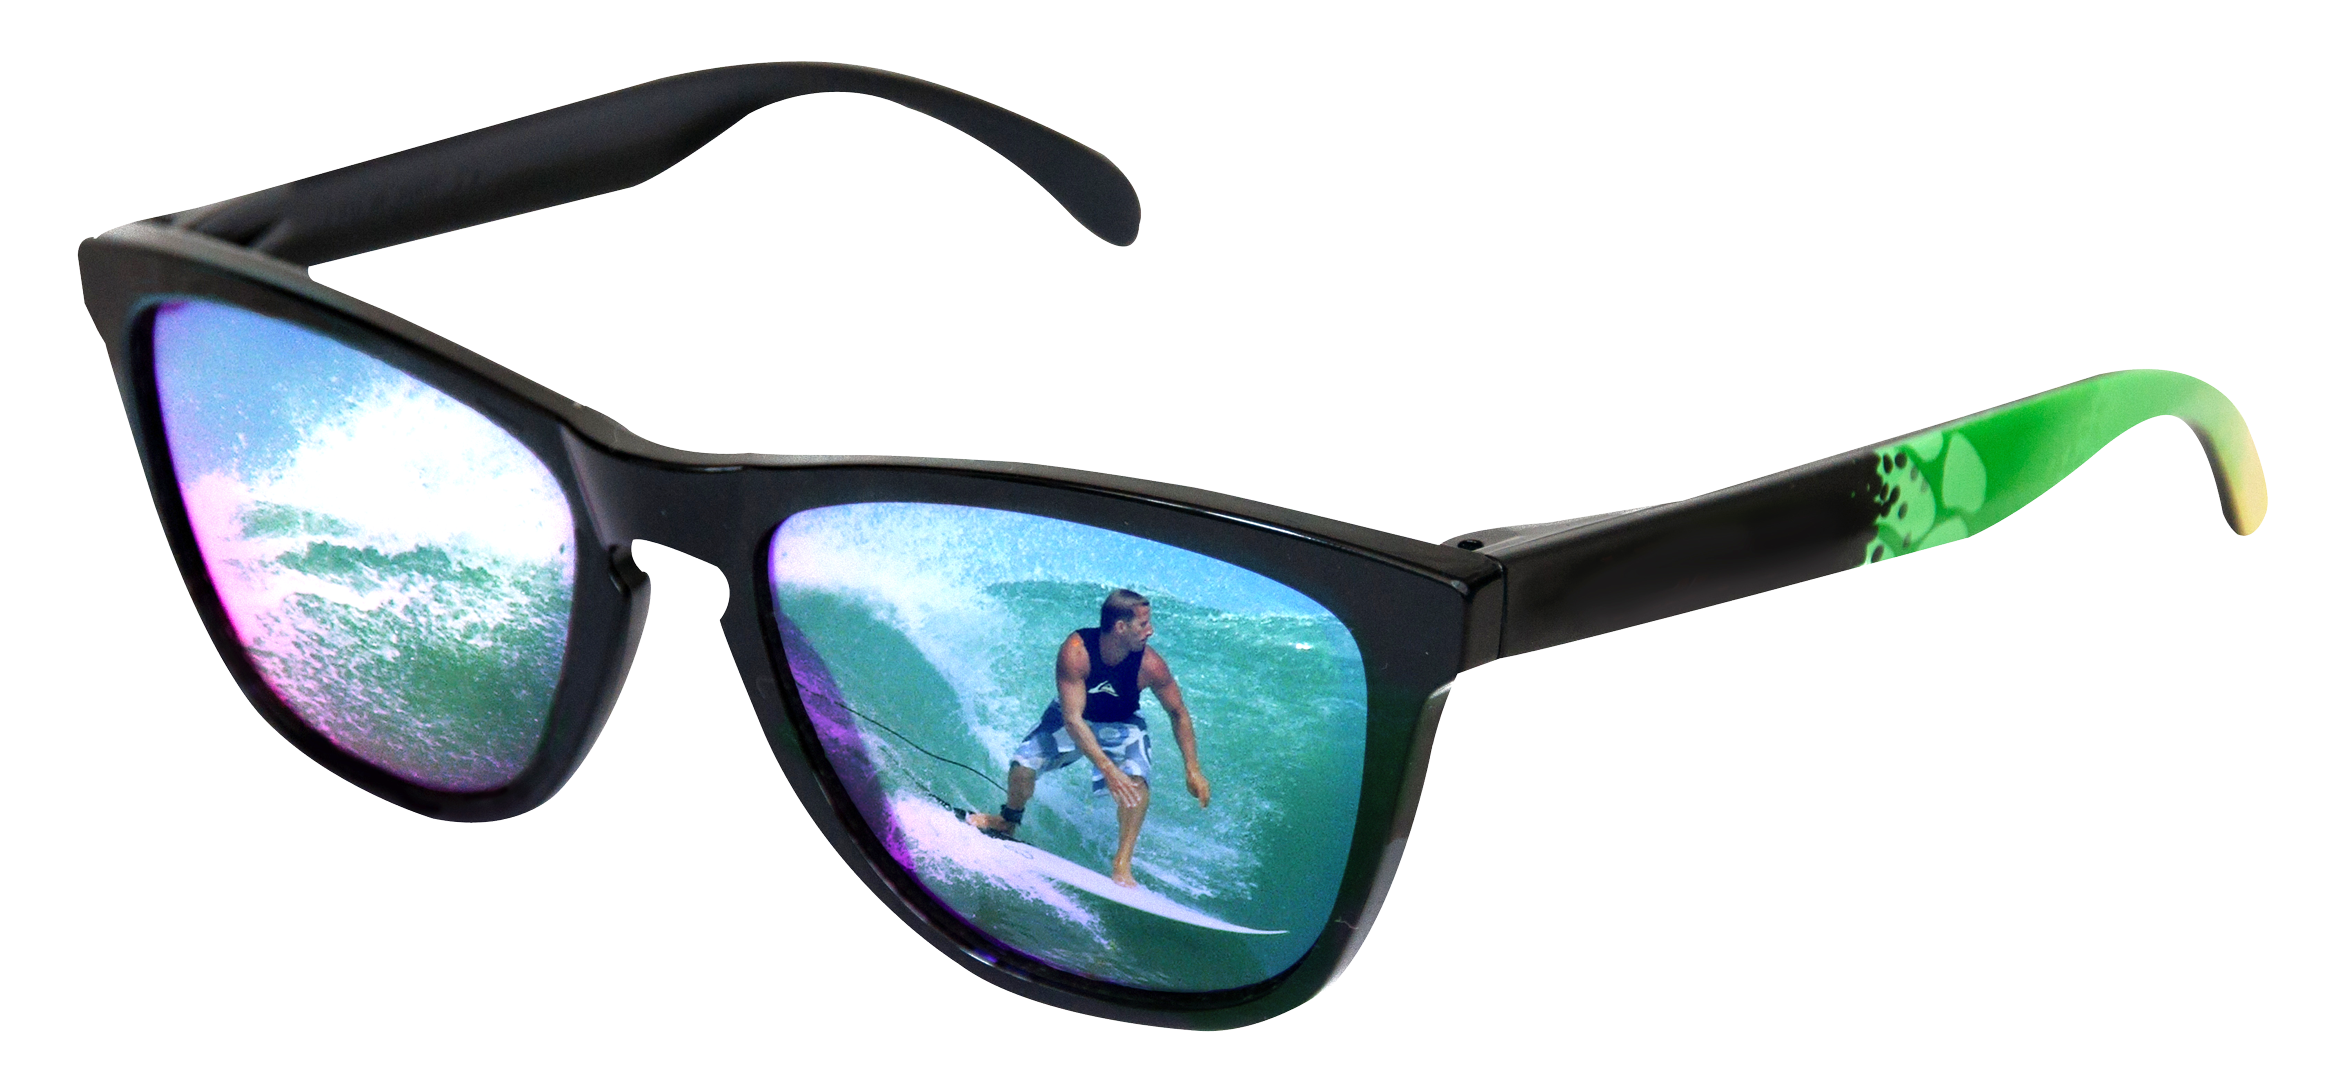 Sunglasses PNG - 22883